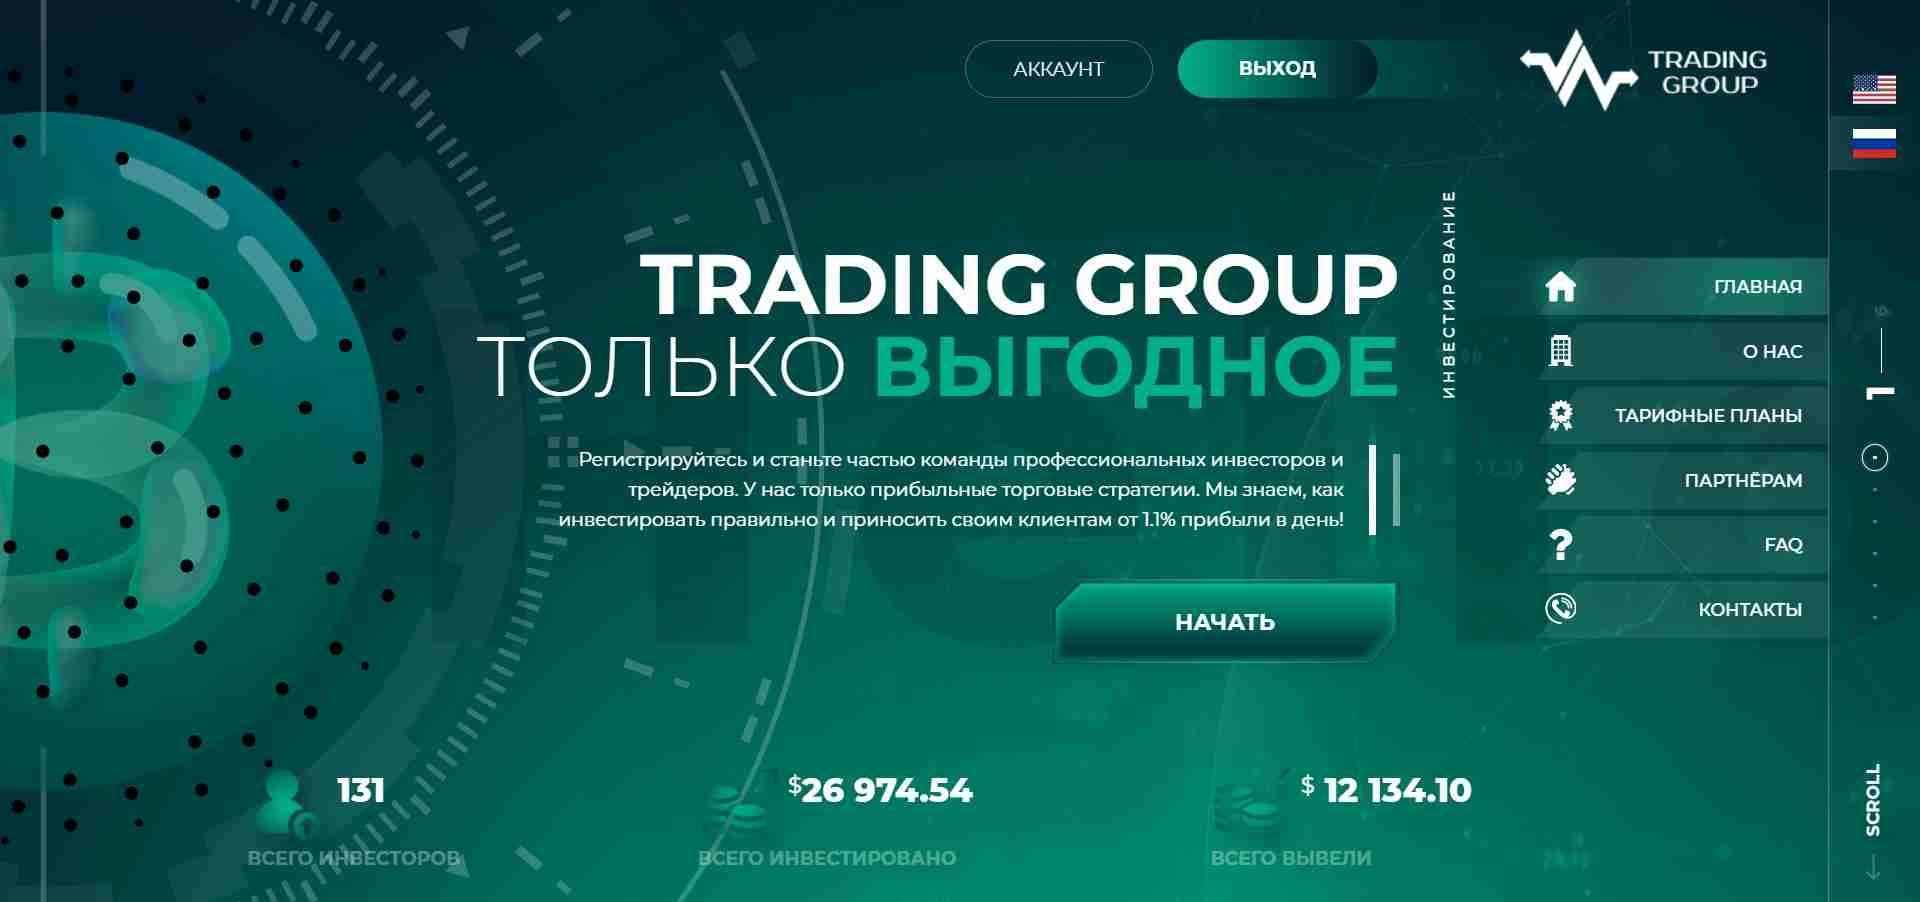 Trading Group